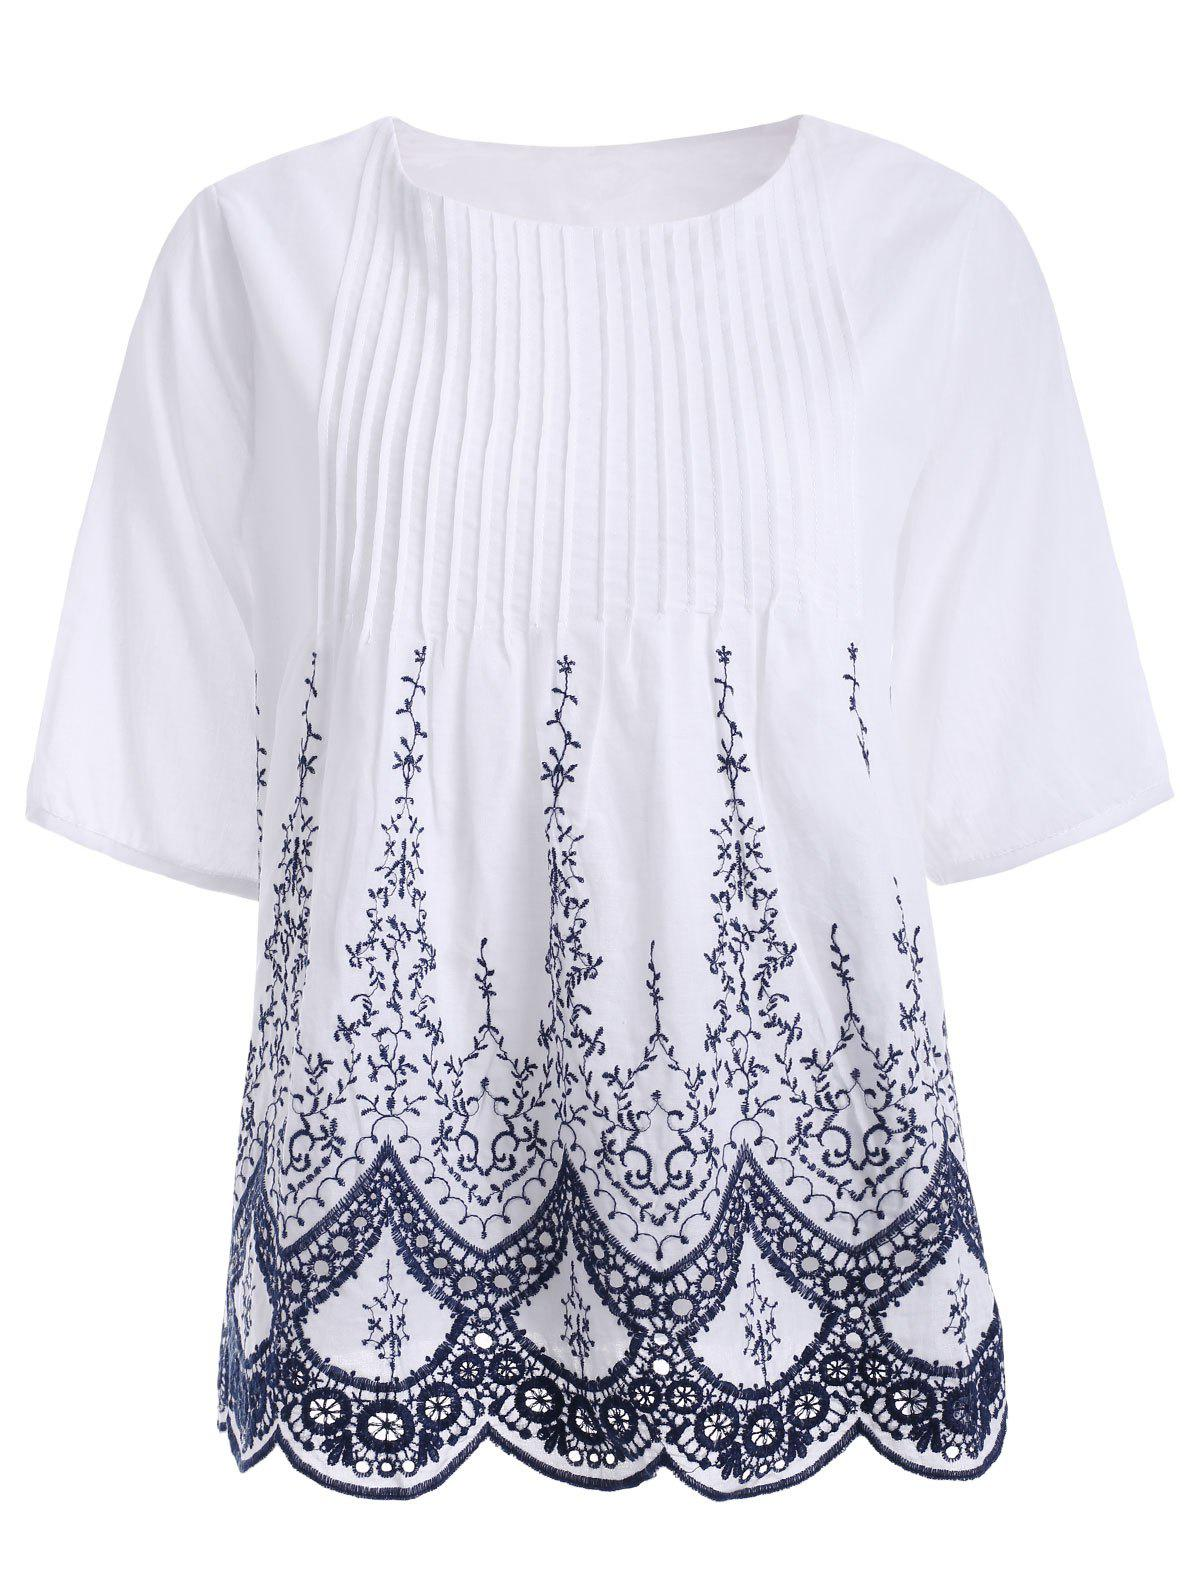 Ladylike Floral Embroidered Ribbed Crochet Blouse For Women